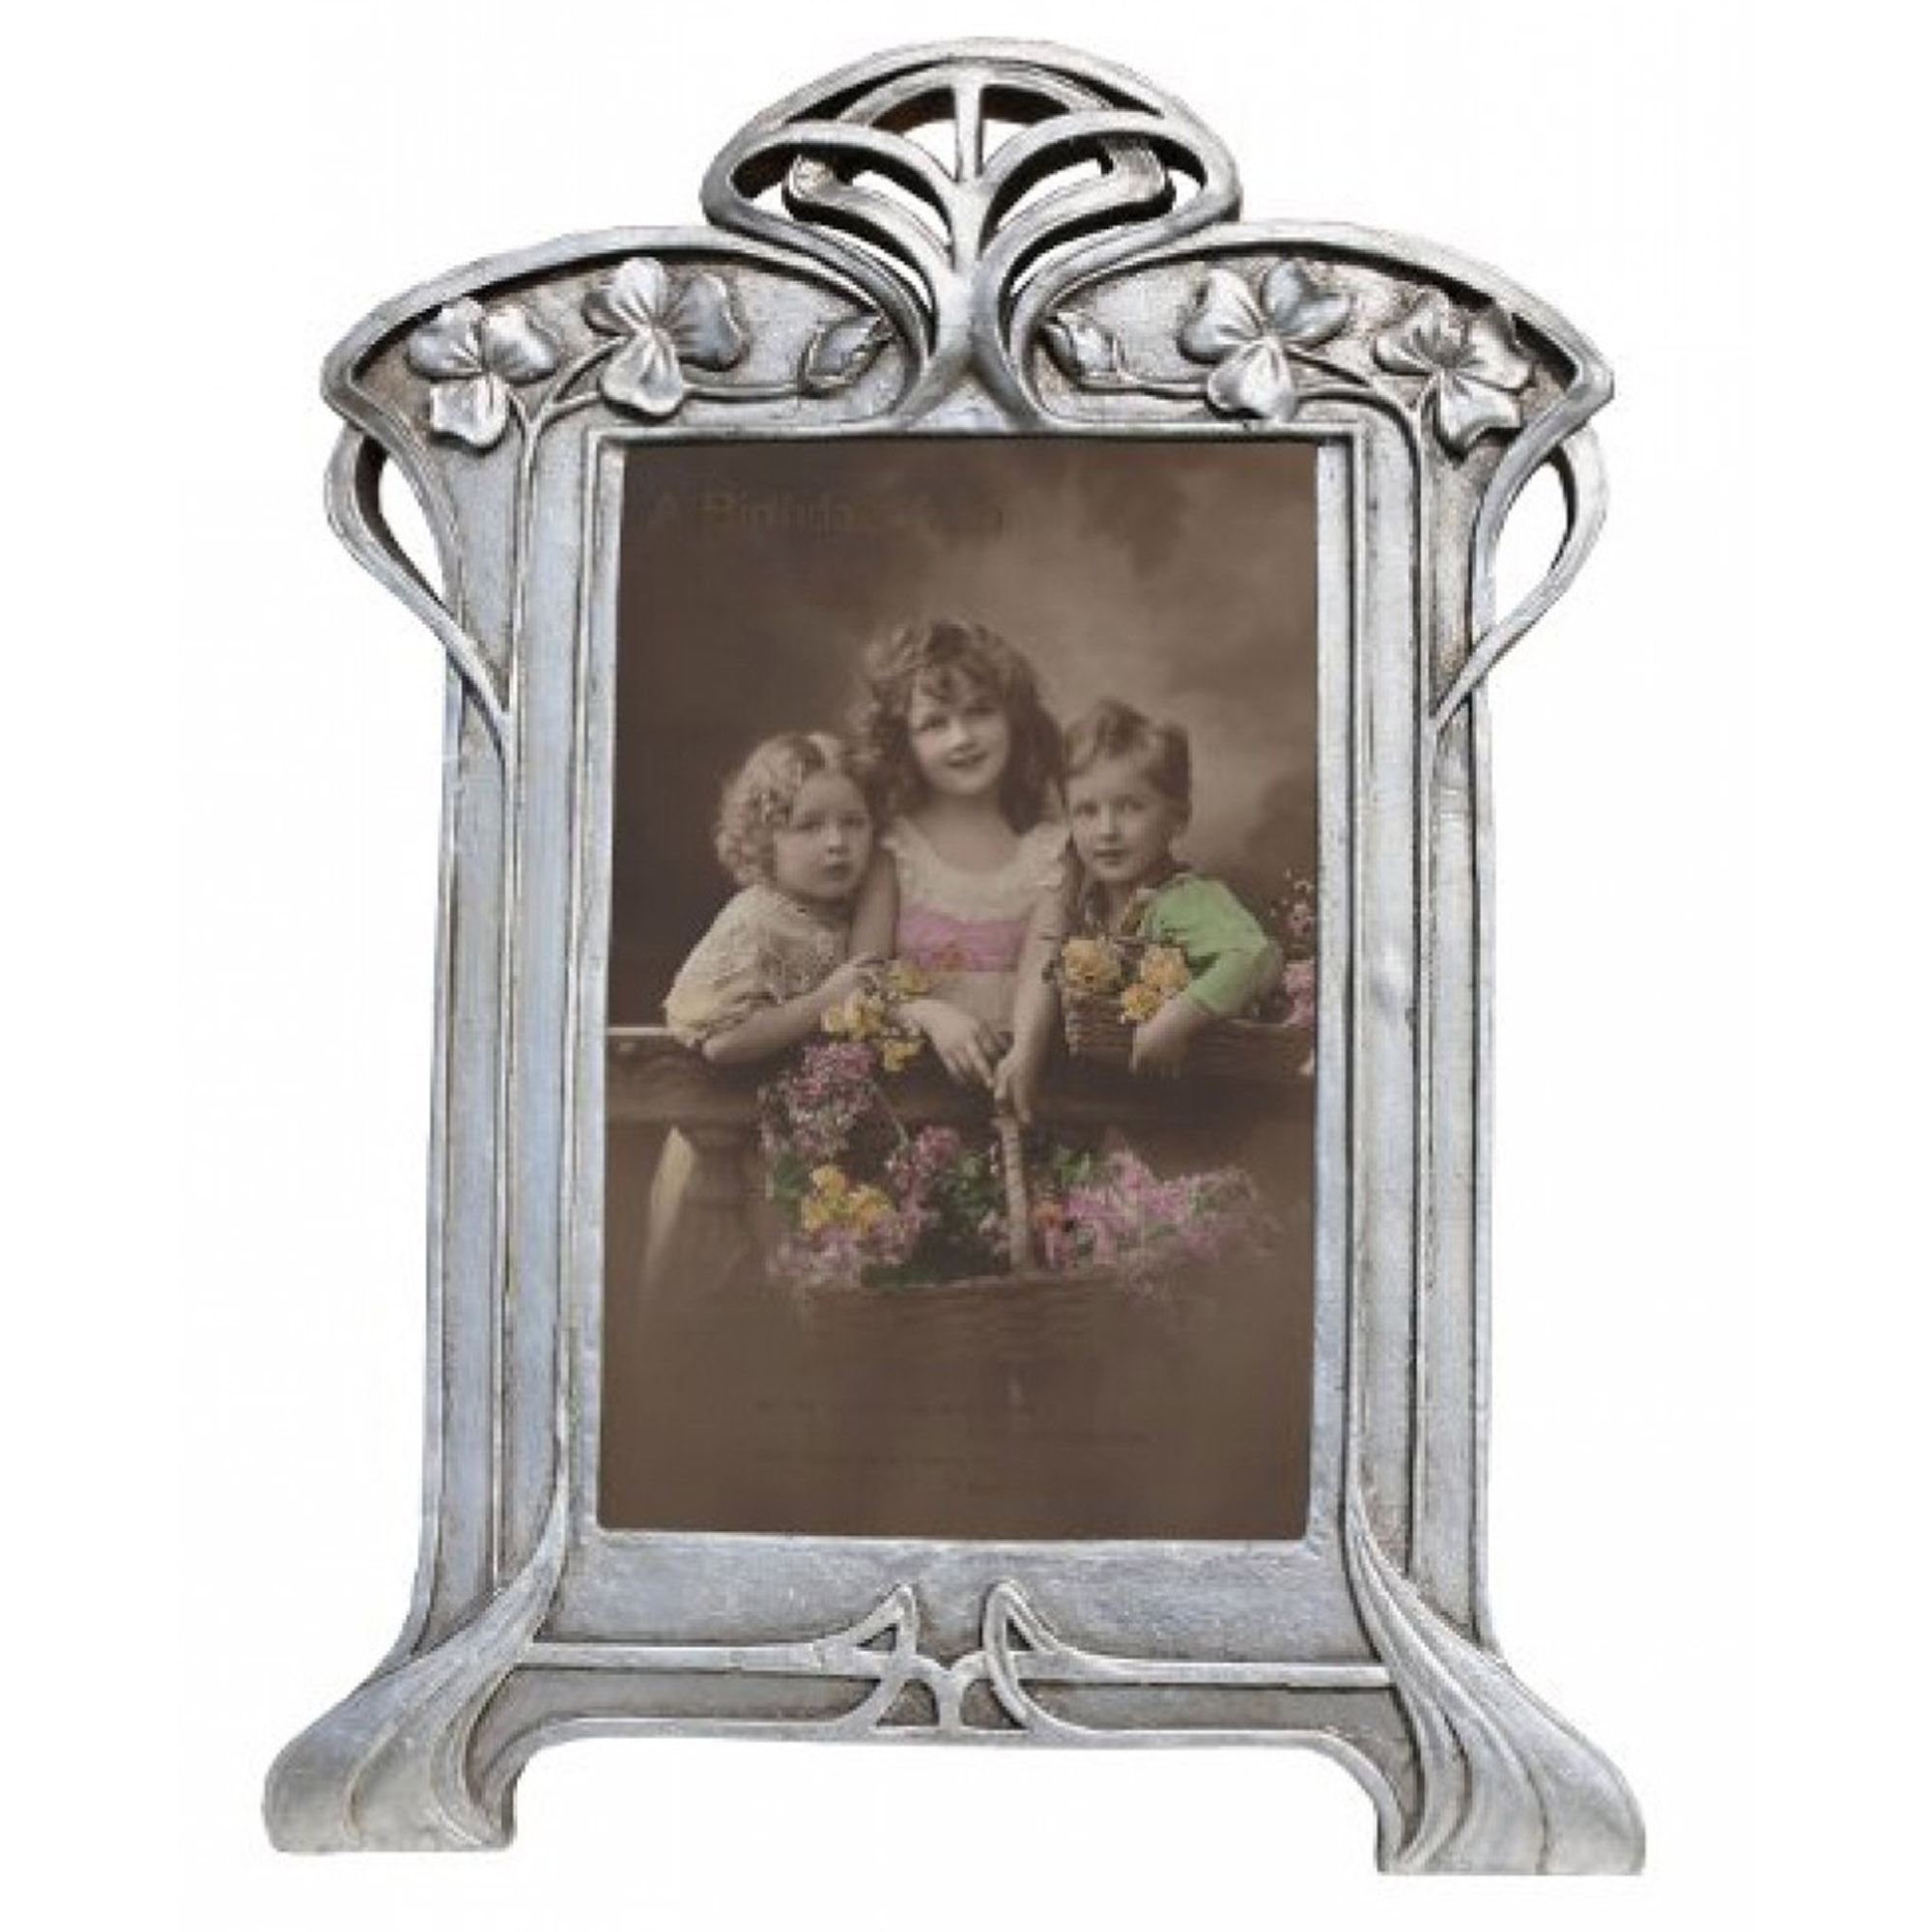 Decorative Silver Antique French Style Photo Frame | Photo Frames